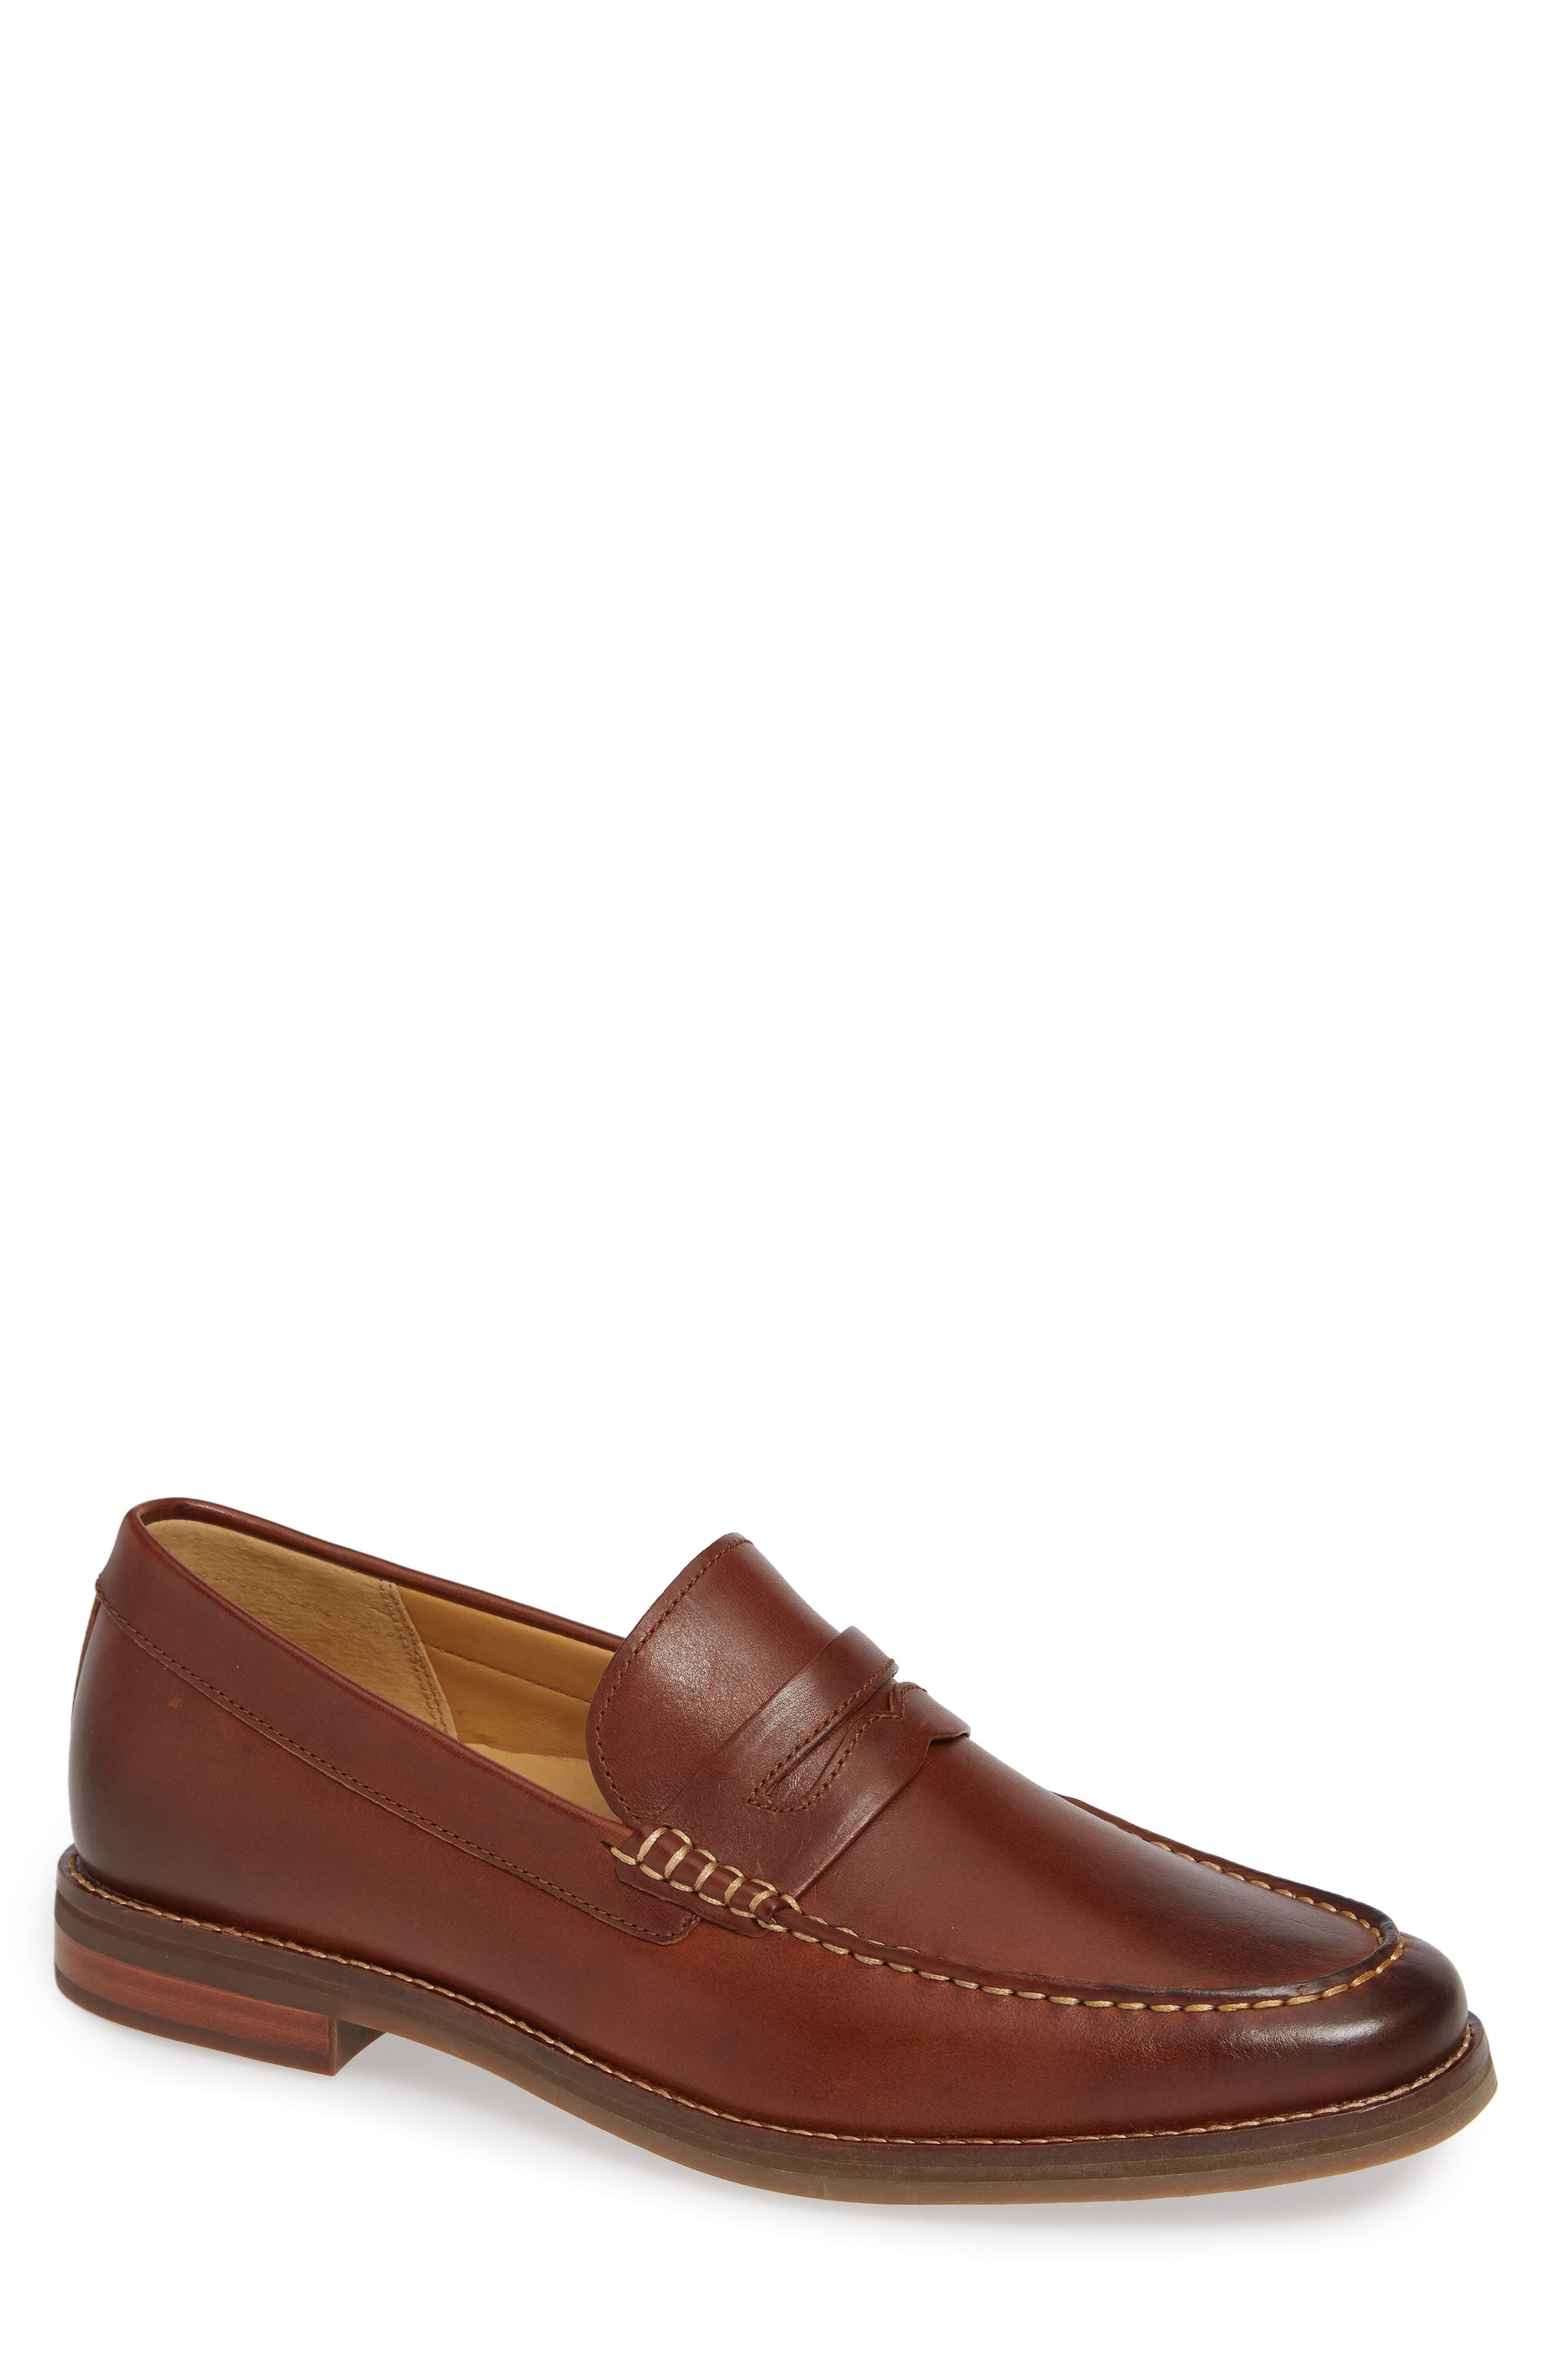 SPERRY, Gold Cup Exeter Penny Loafer, Main thumbnail 1, color, TAN